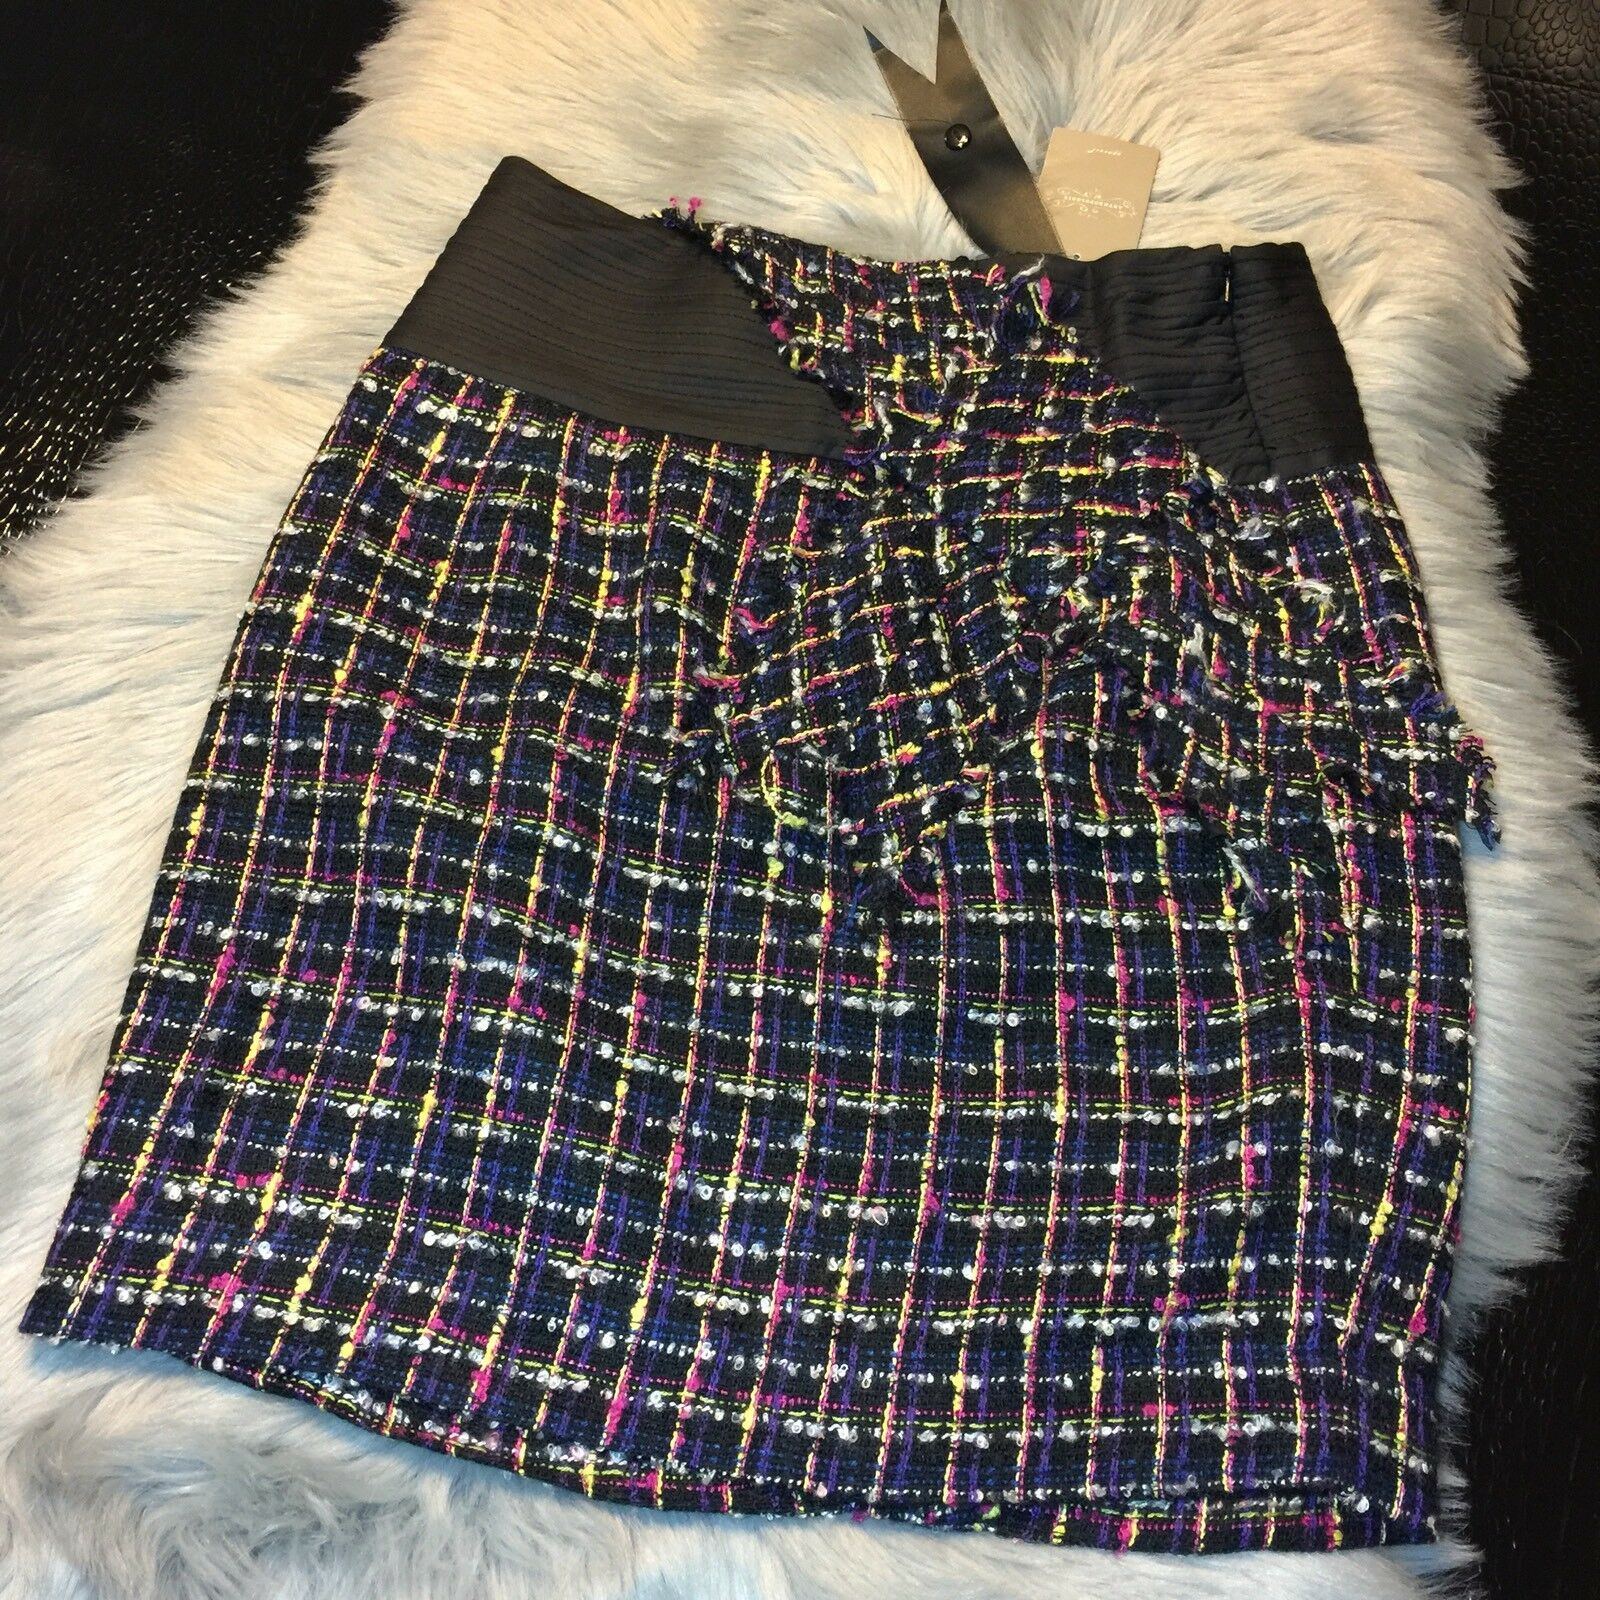 NWT Anthropologie Skirt Multicolord Size 8 Retails  98 Super CUTE